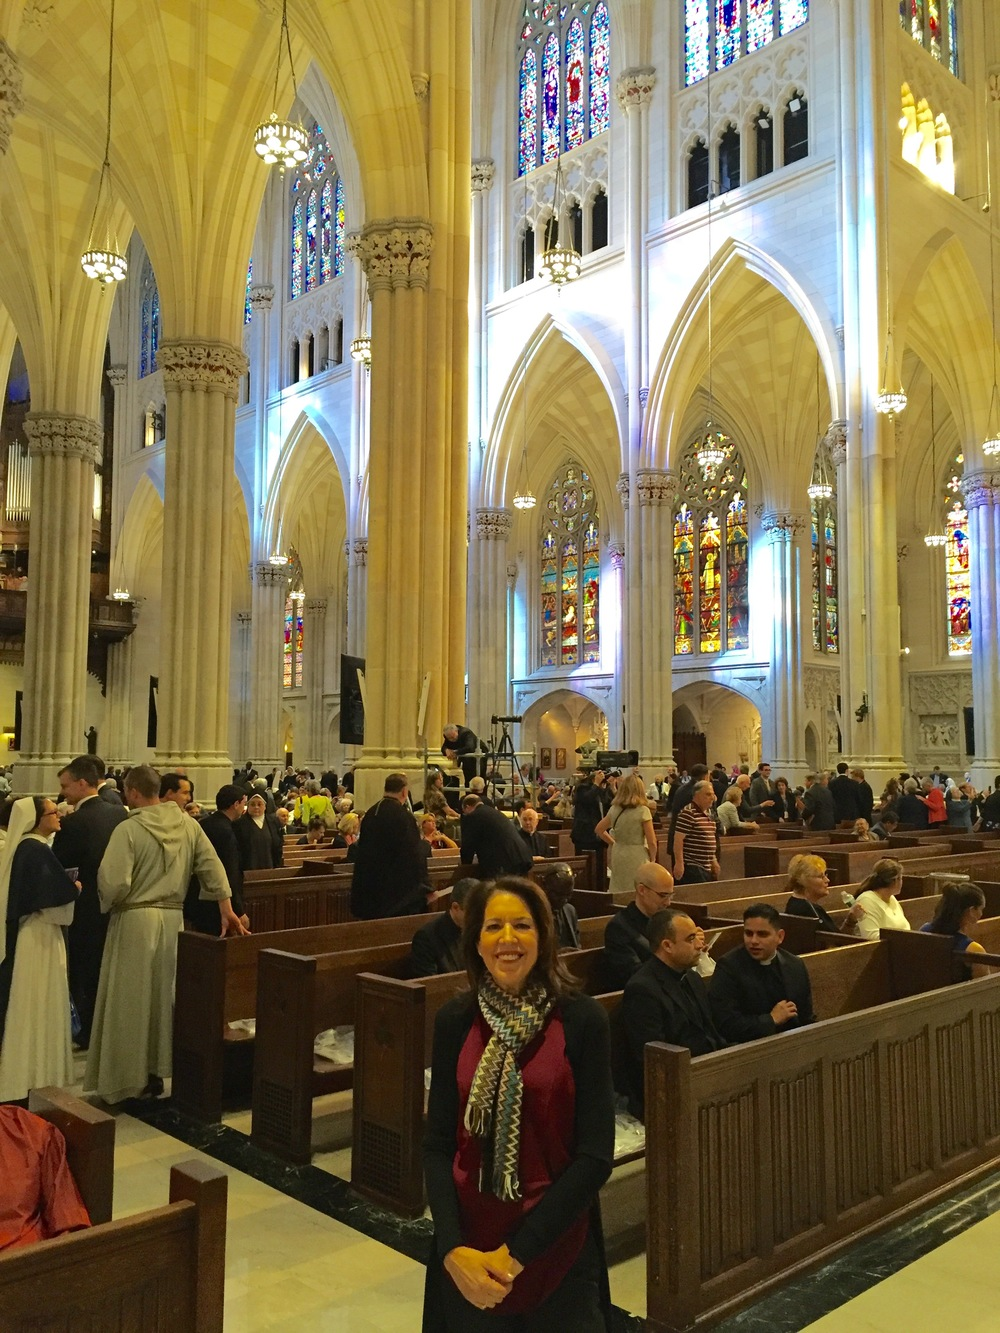 St. Patricks Cathedral - Pope Francis' visit 2015